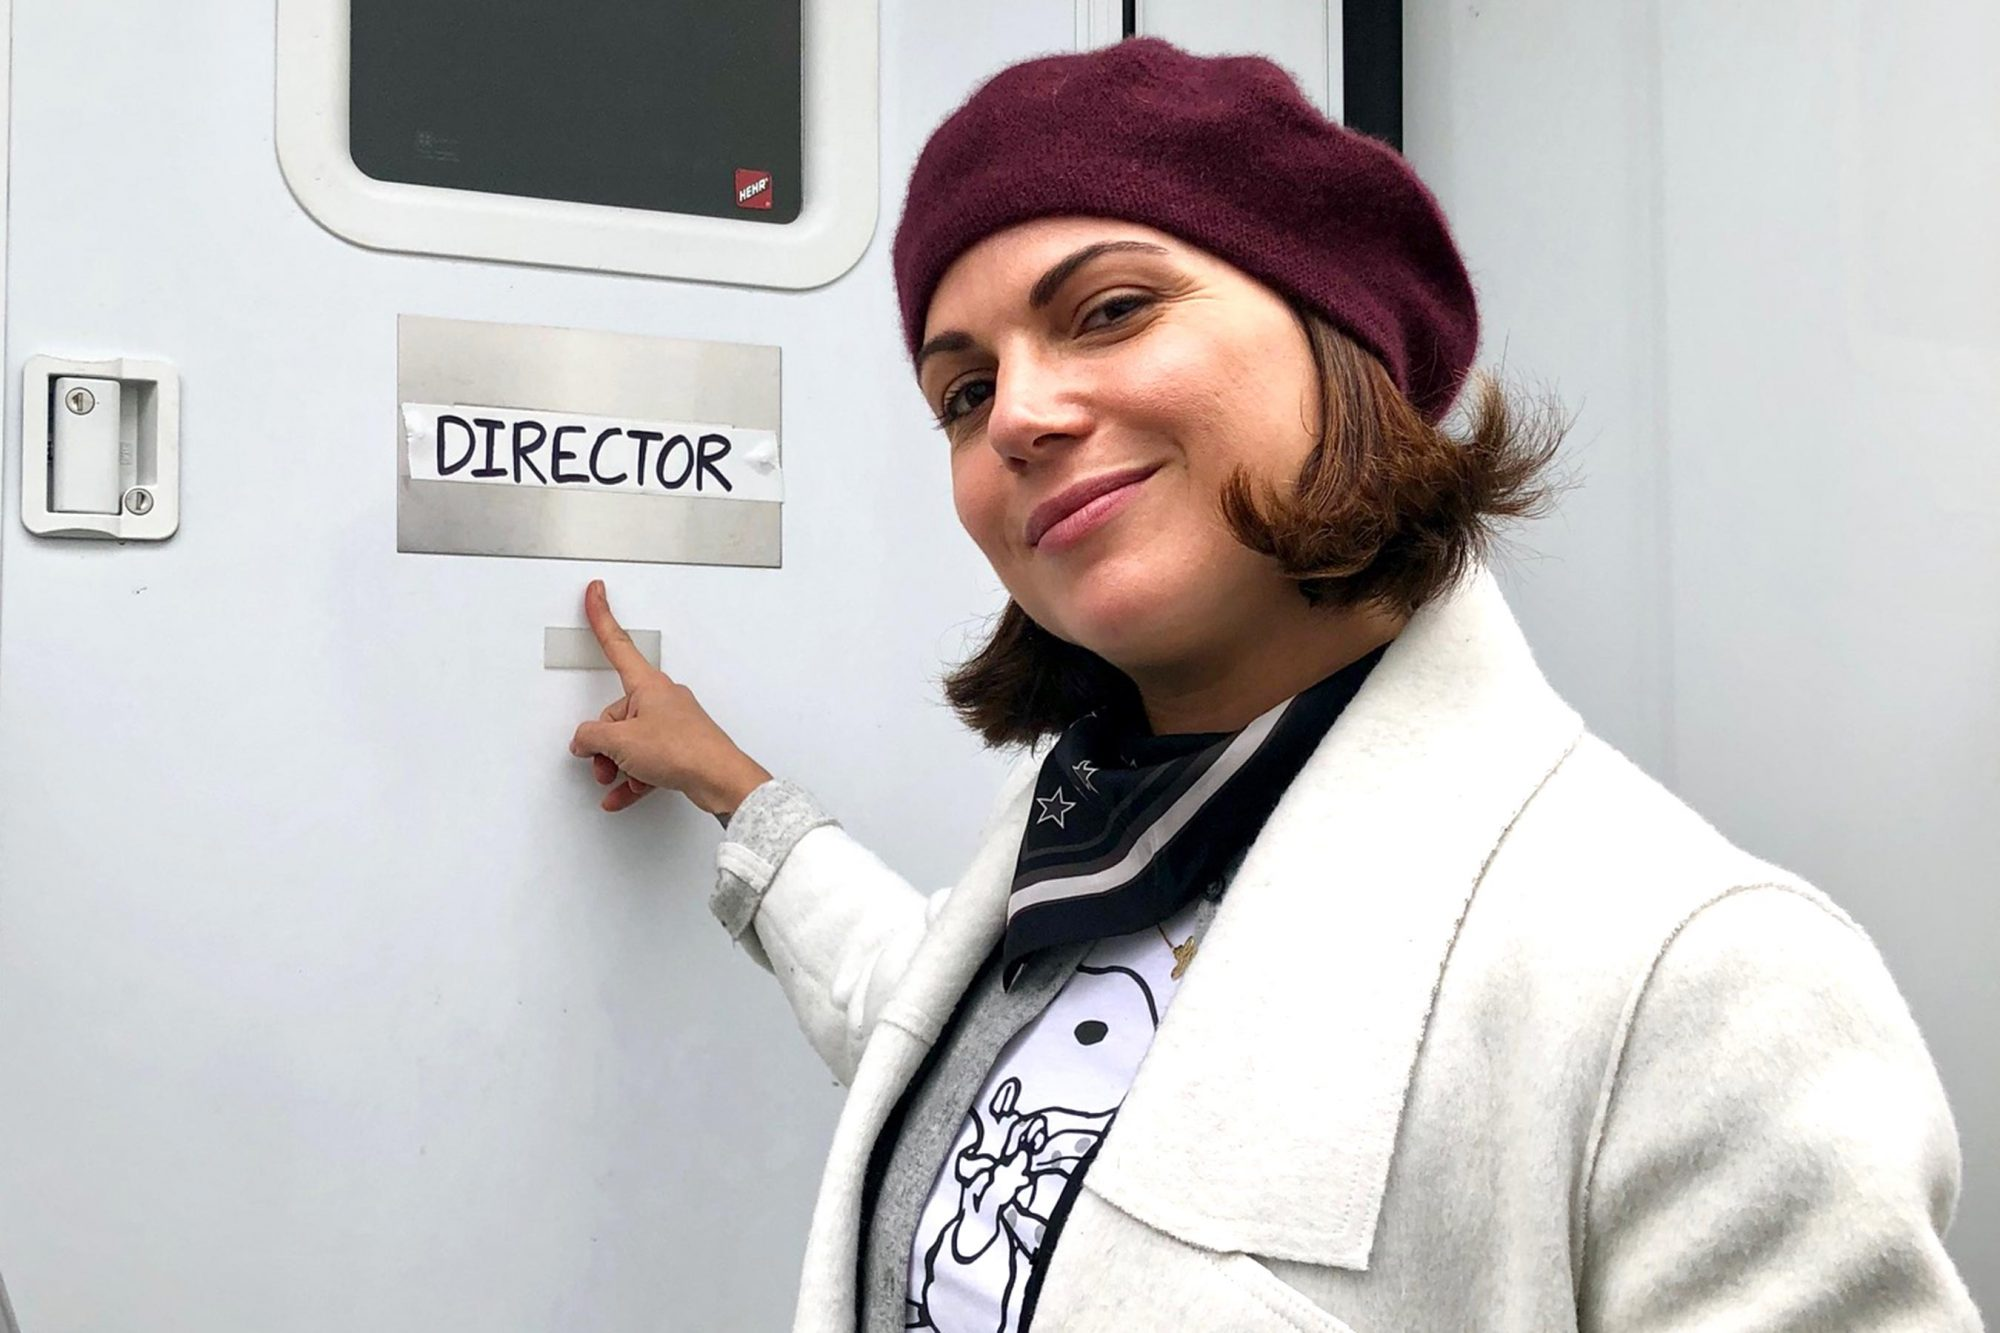 Lana Parrilla Directing Once Upon A Time set photos CR: Lana Parrilla